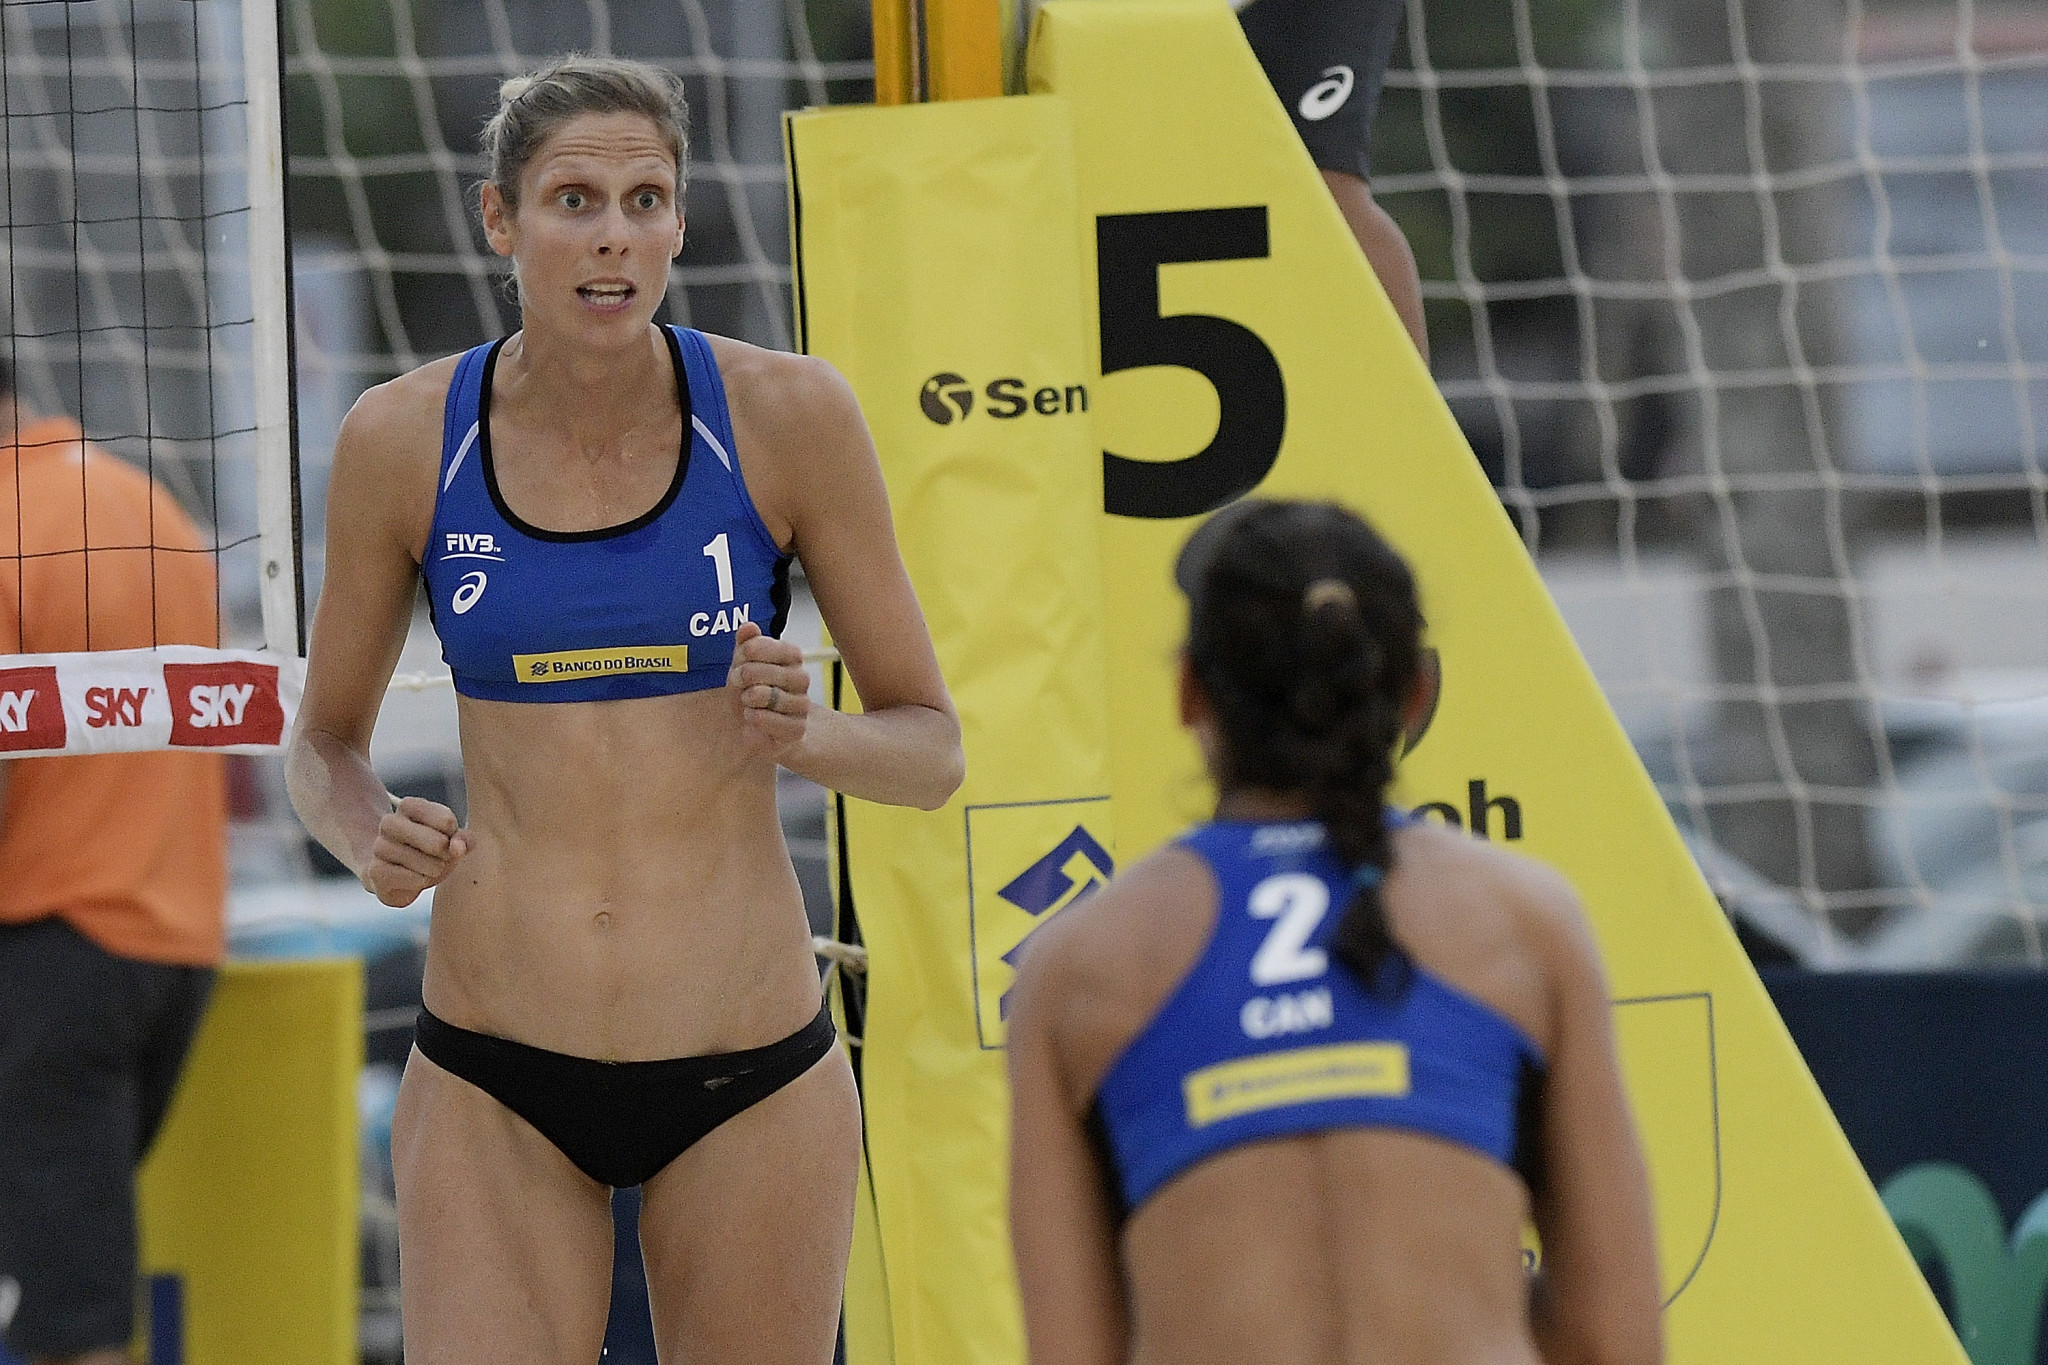 Canadians Melissa Humana-Paredes and Sarah Pavan are top seeds for the first FIVB Beach Volleyball World Tour event to take place in Warsaw since 2007 ©Getty Images